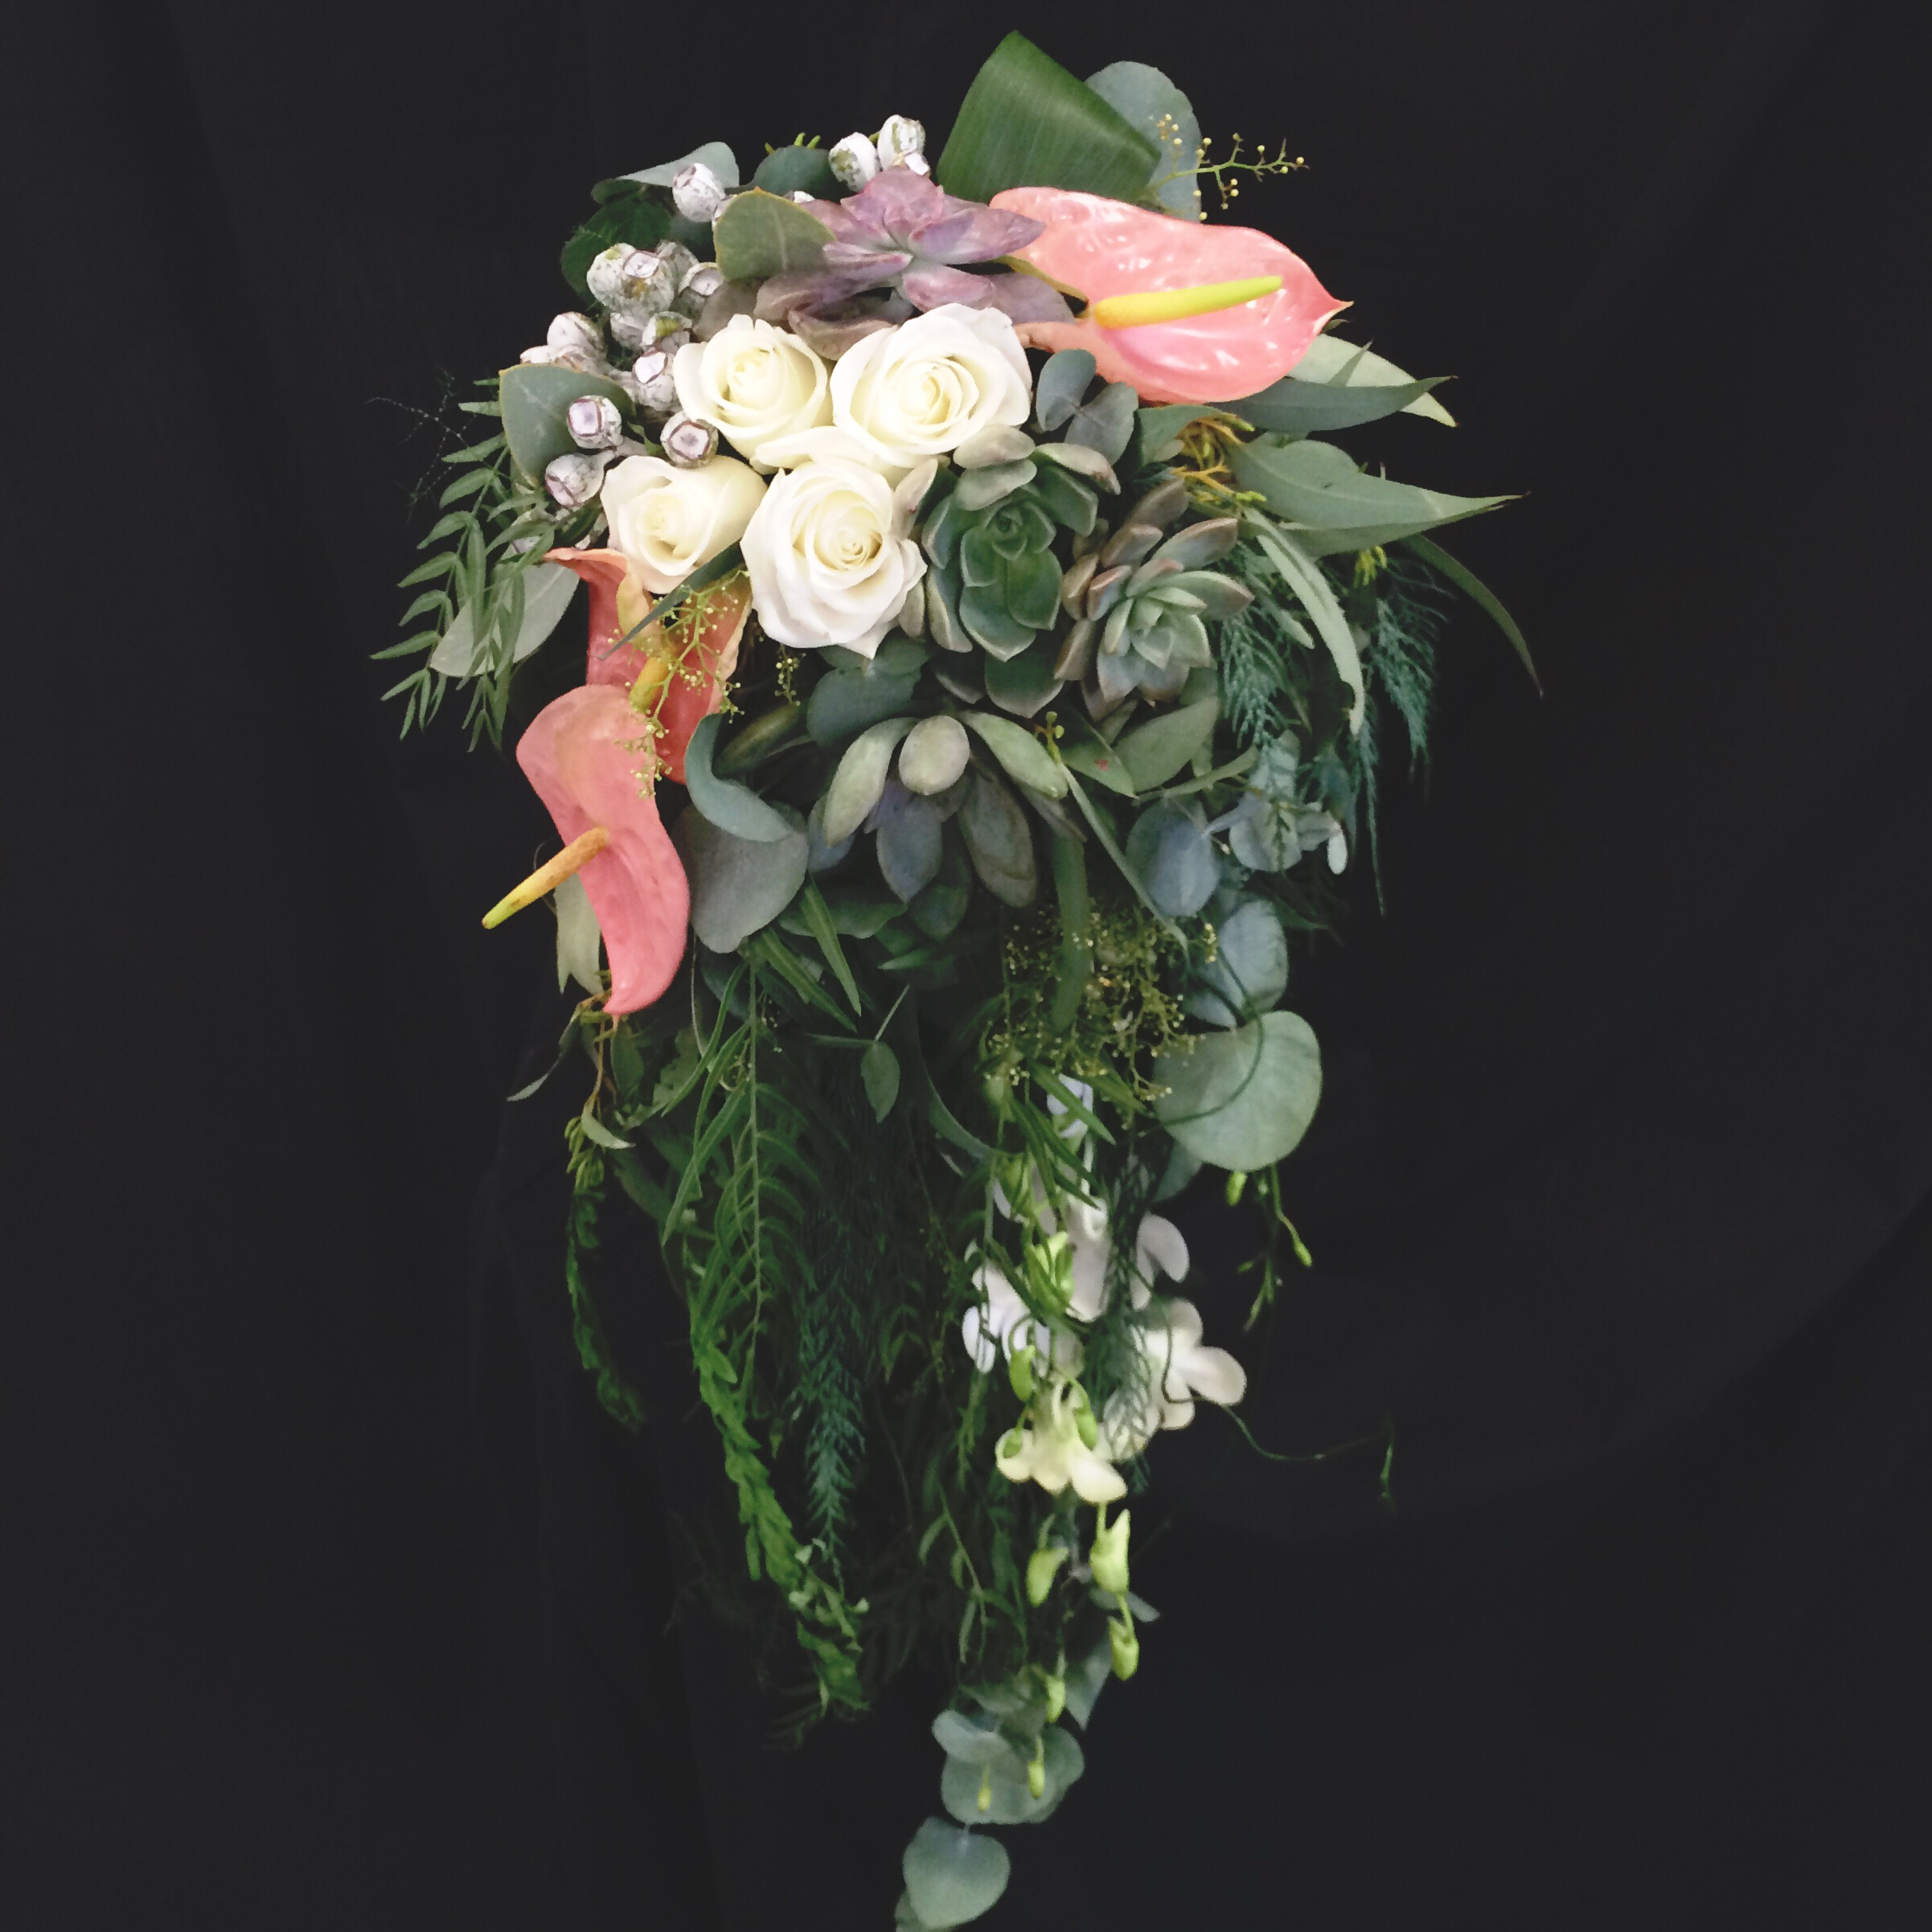 Waterfall Bouquet 2016